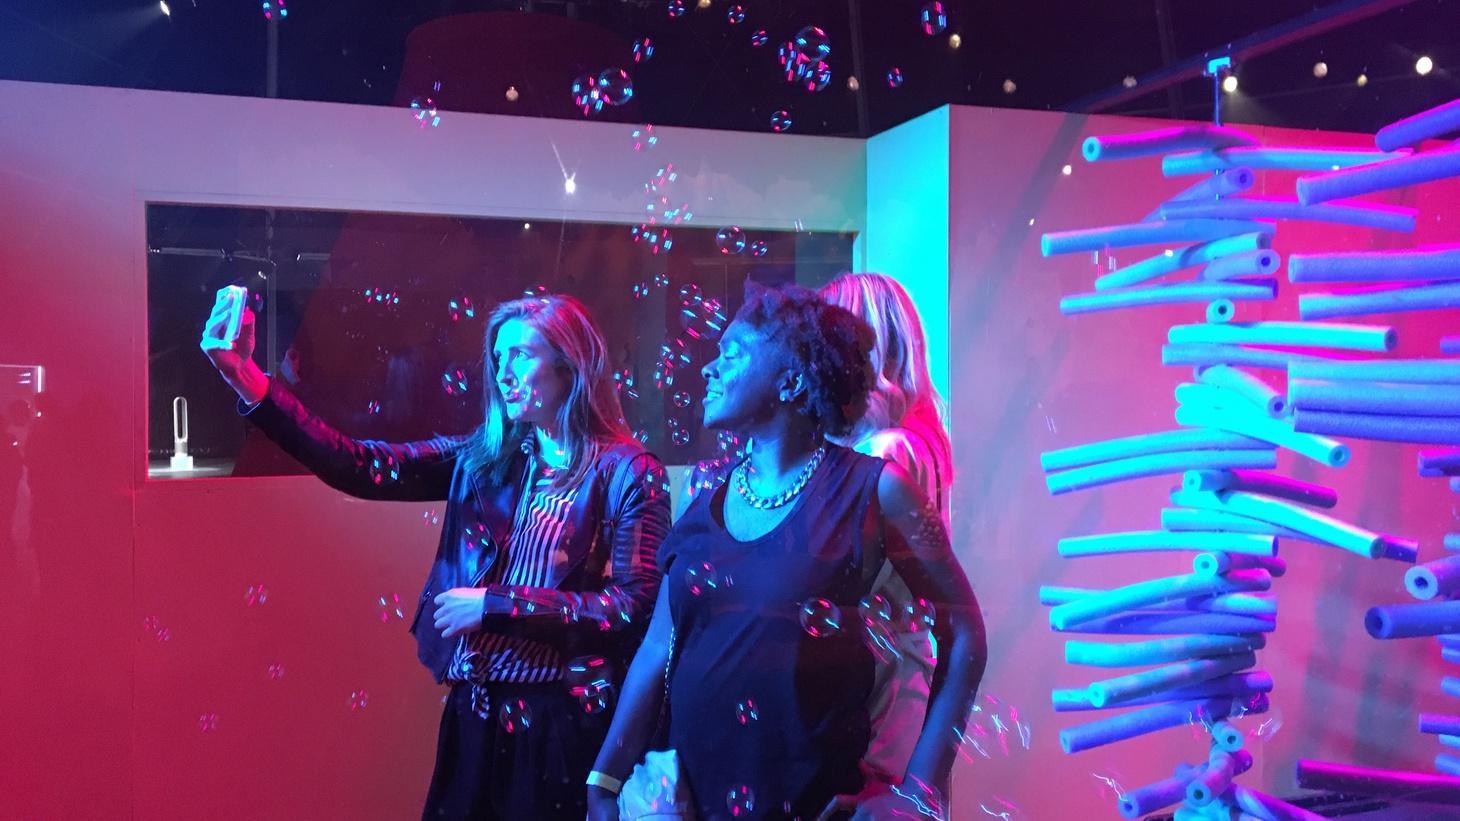 """Coming in January, you'll be able to buy tickets to the Museum of Selfies in Glendale. It's part of the trend this past year of """"made-for-Instagram"""" museums, collections of colorful sets designed for taking flattering self-portraits."""